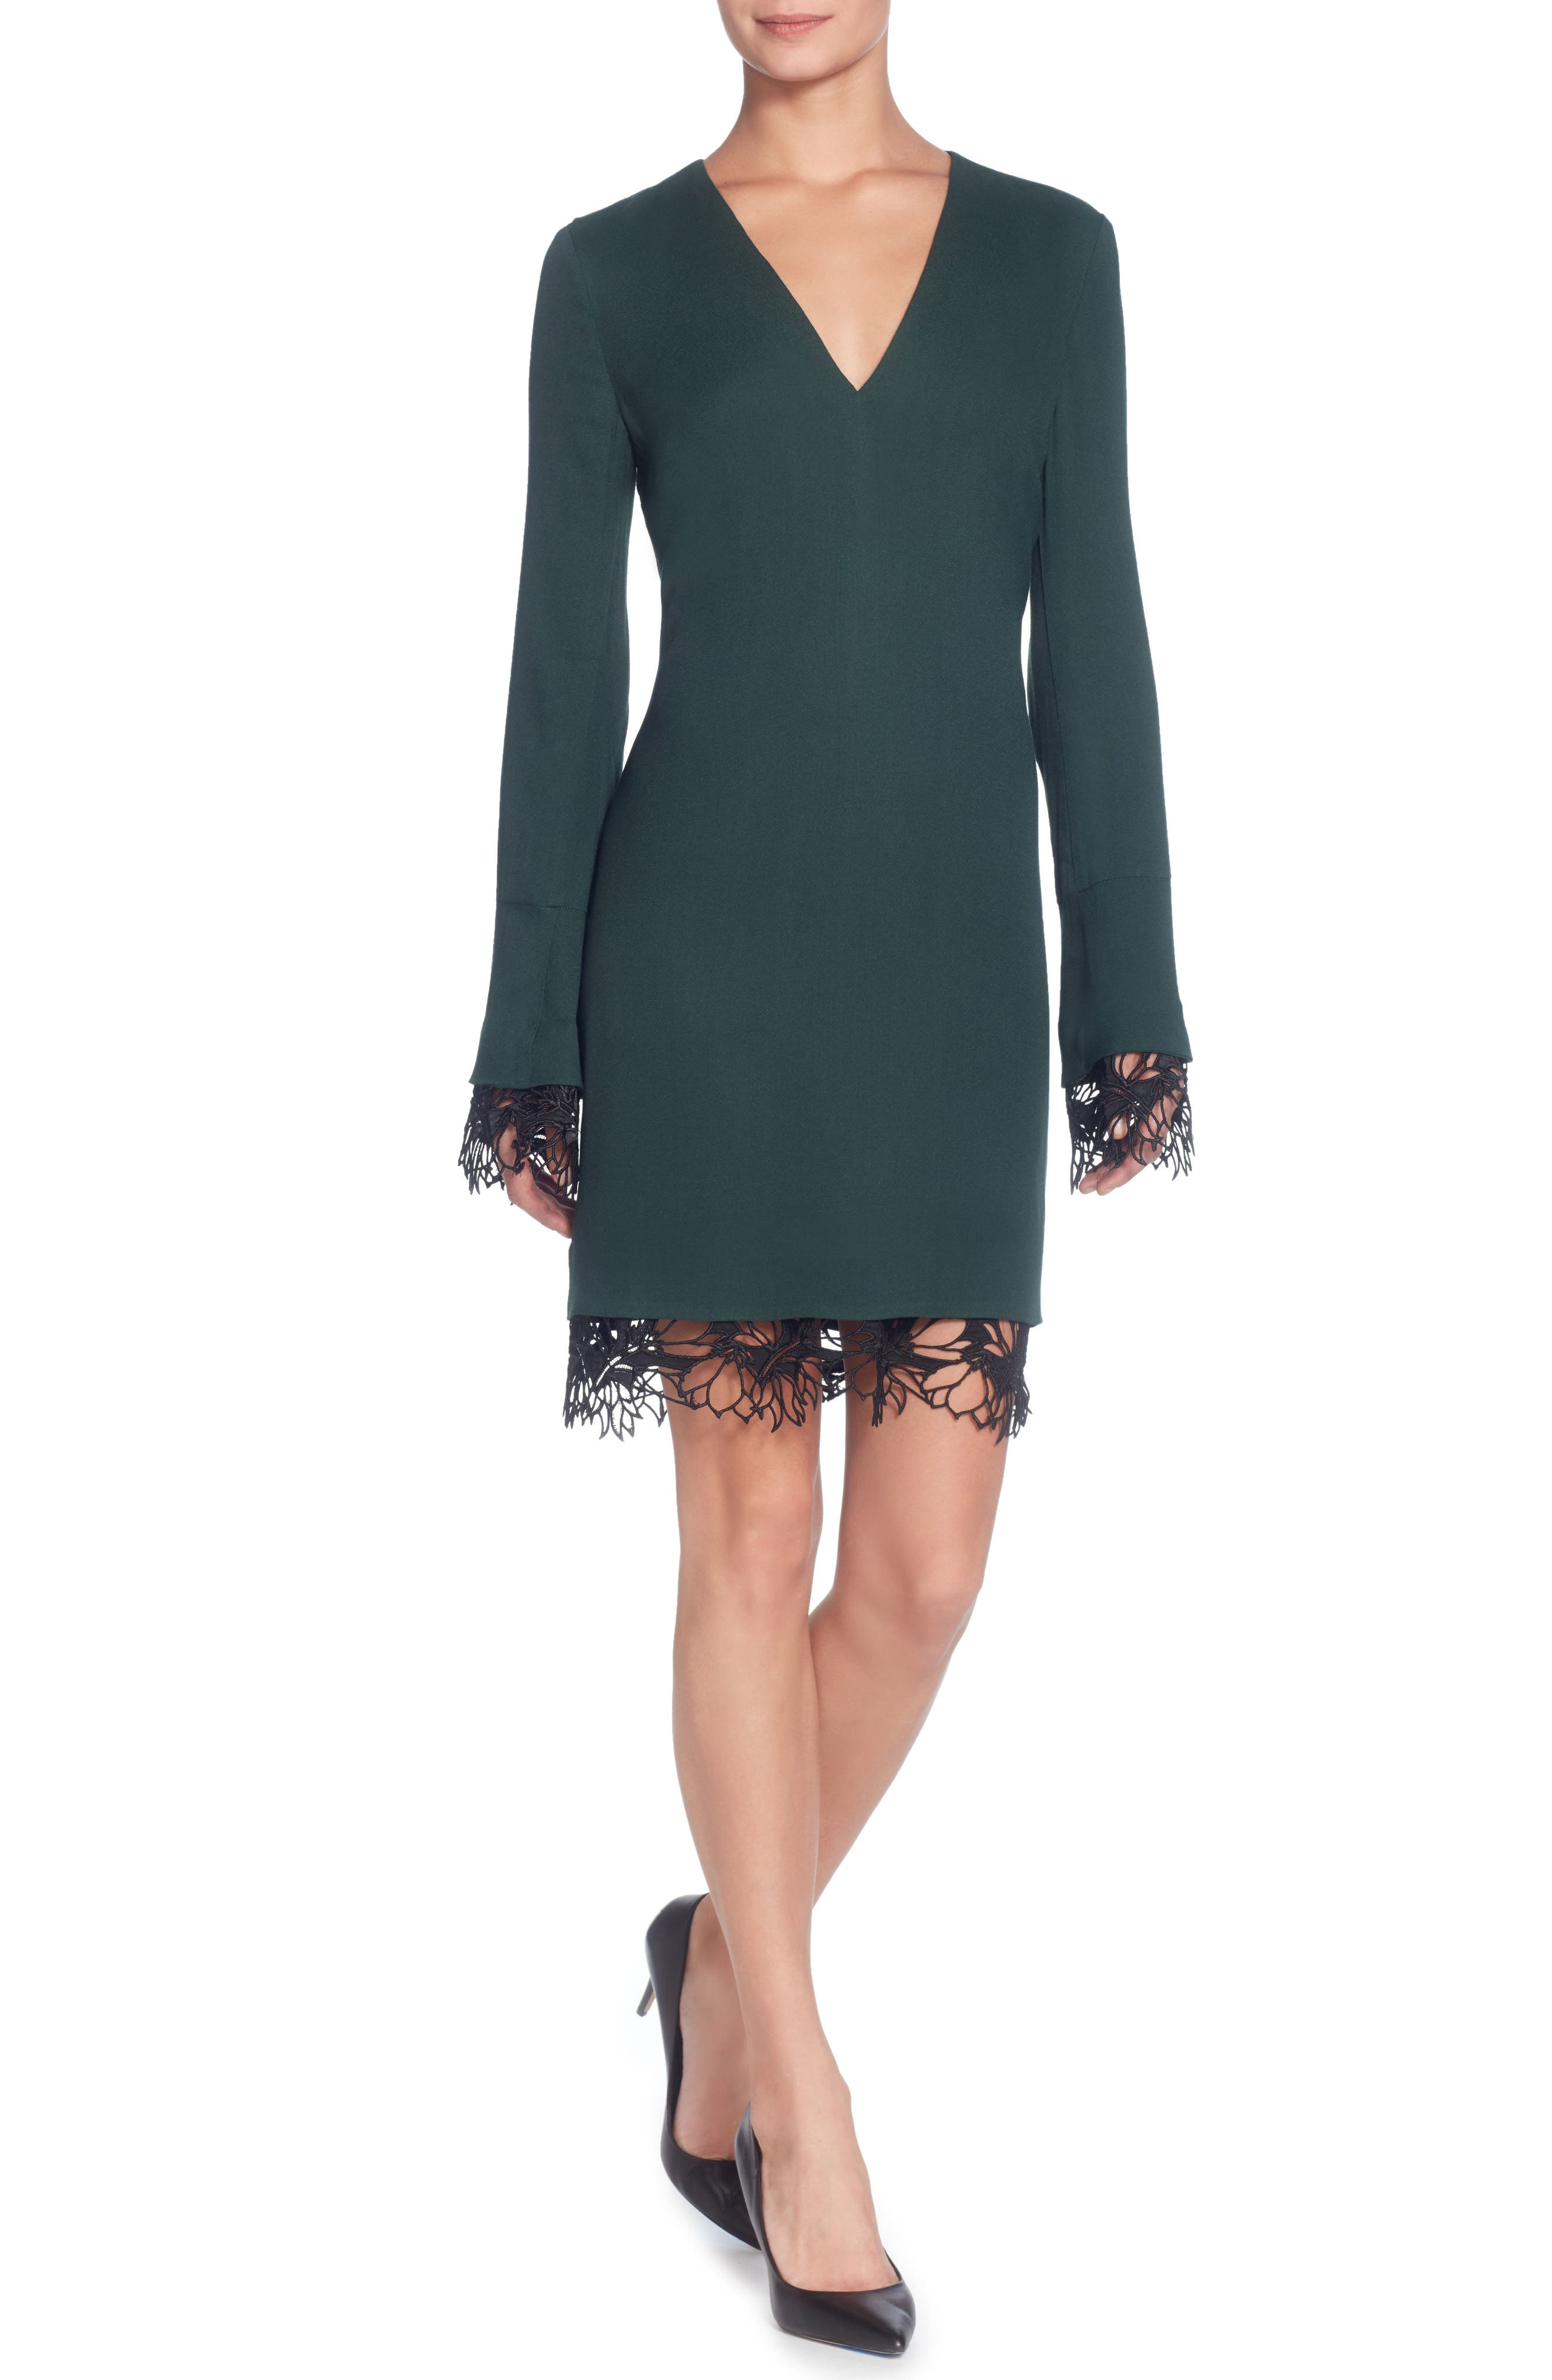 Alternate Image 1 Selected - Catherine Catherine Malandrino Pernilla V-Neck Sheath Dress